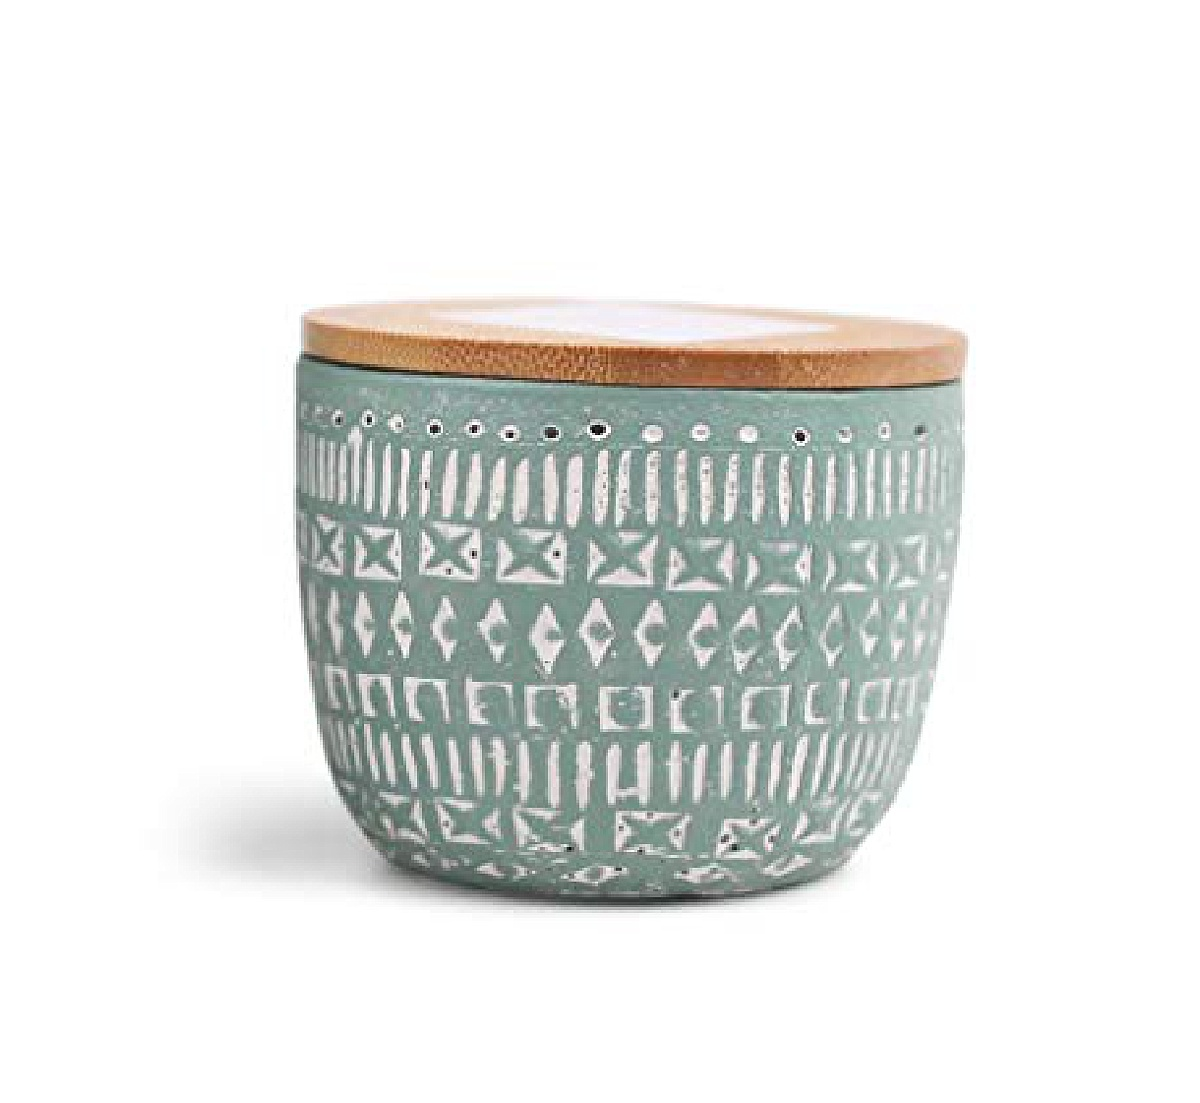 Marnie Rae soft cocktails candle amazon